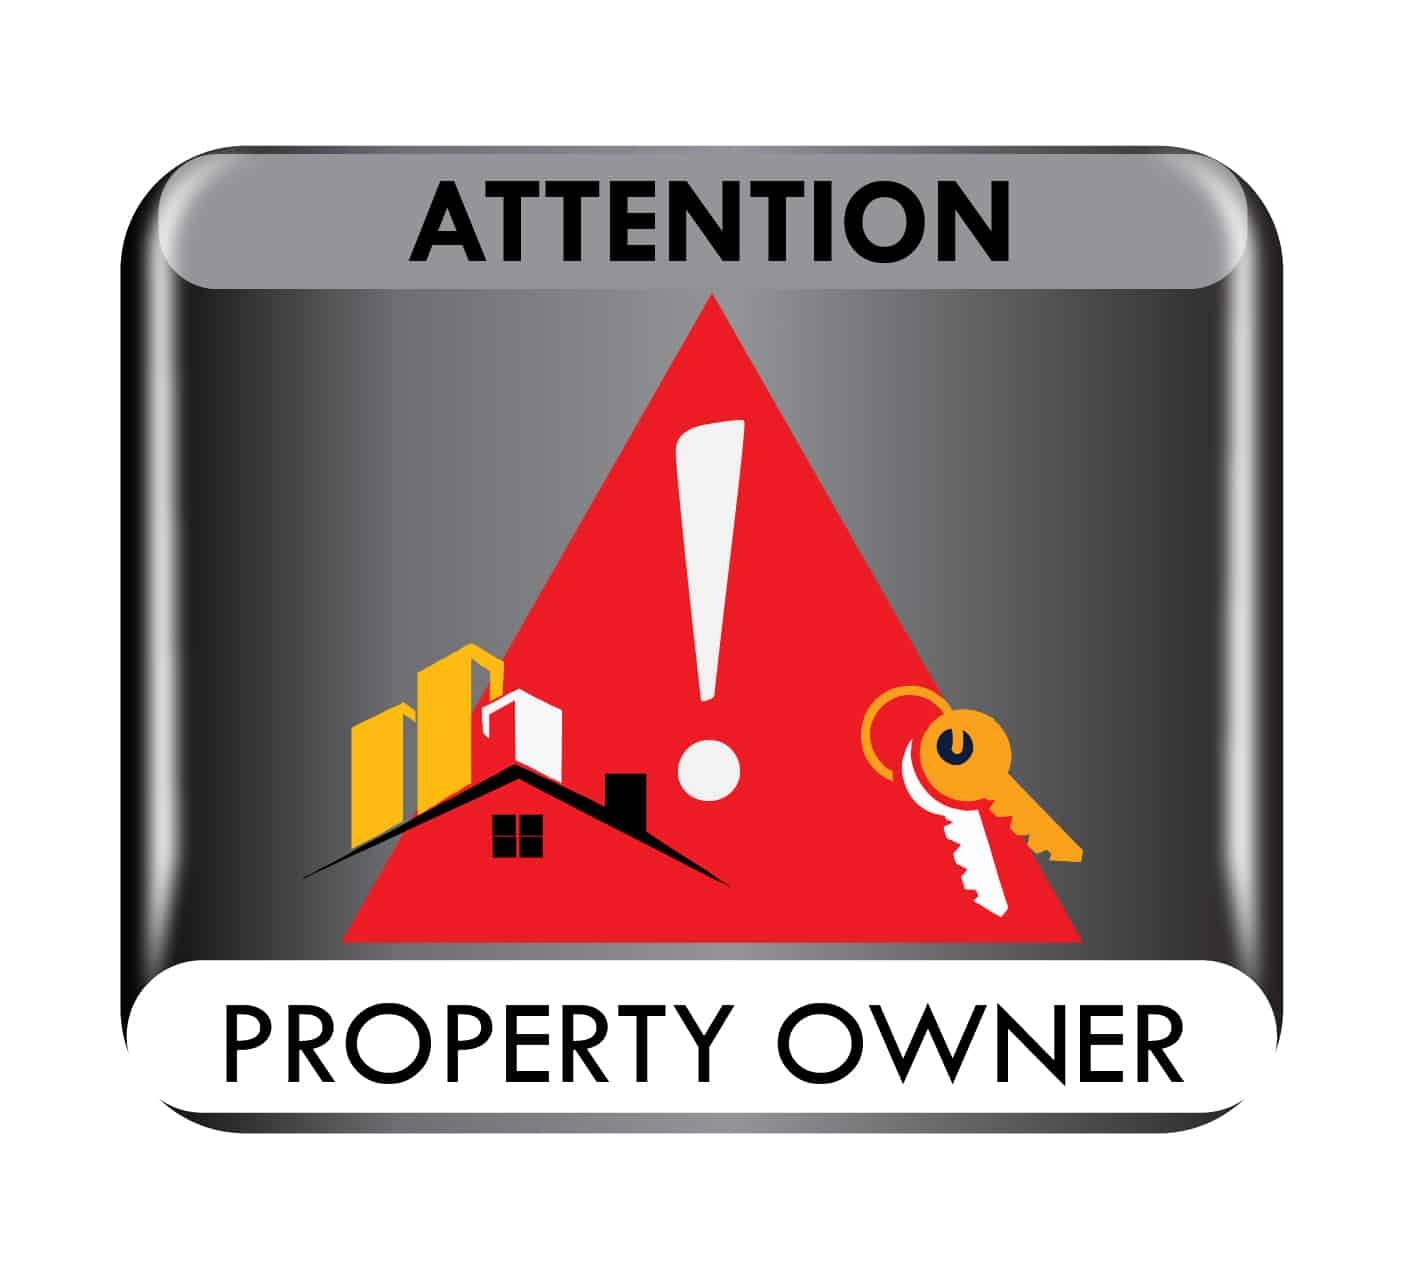 Attention Property Owner